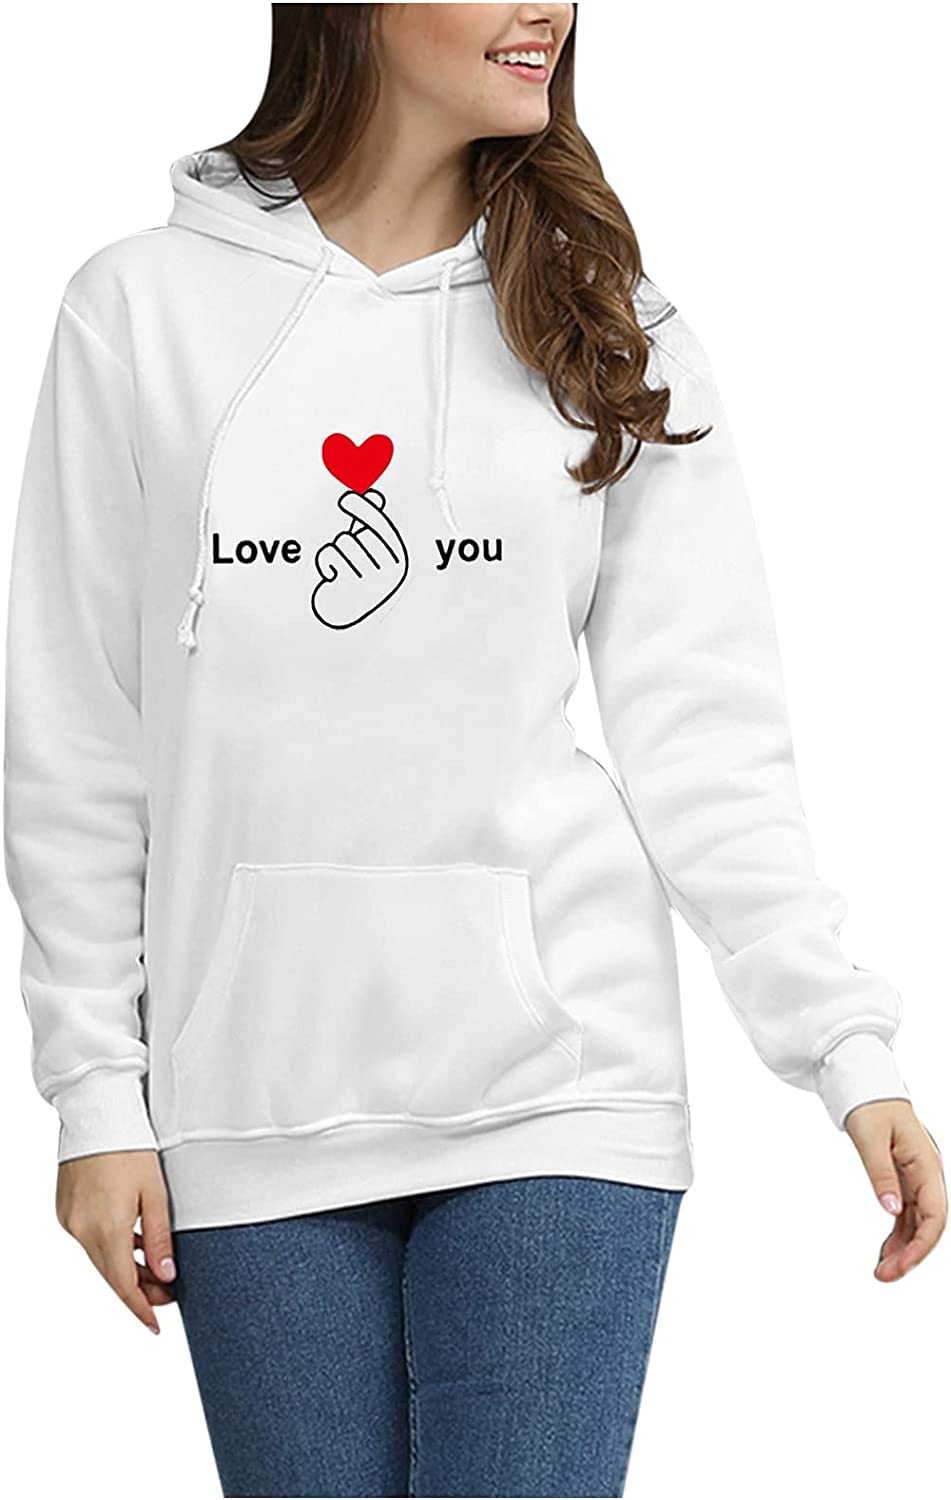 Toeava Hoodie for Women, Women's Casual Print Long Sleeve Pullover Blouse Drawstring Loose Fit Thermal Pullover Tops